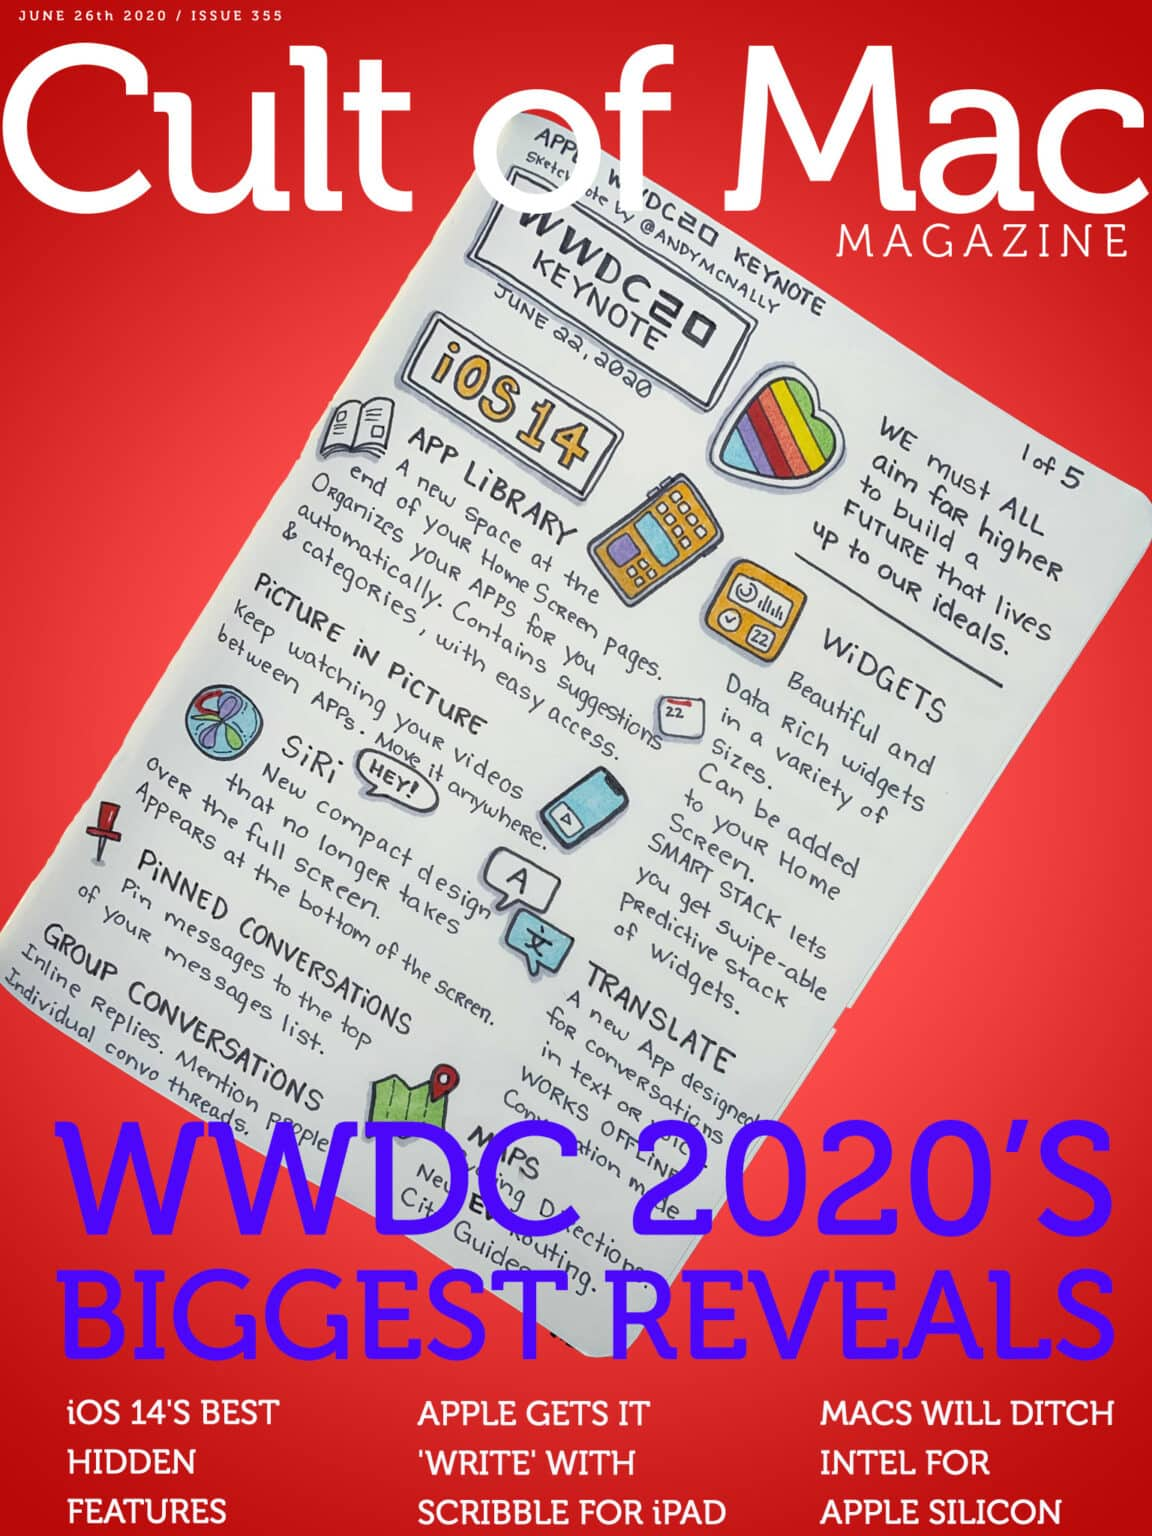 Relive WWDC 2020's biggest moments.